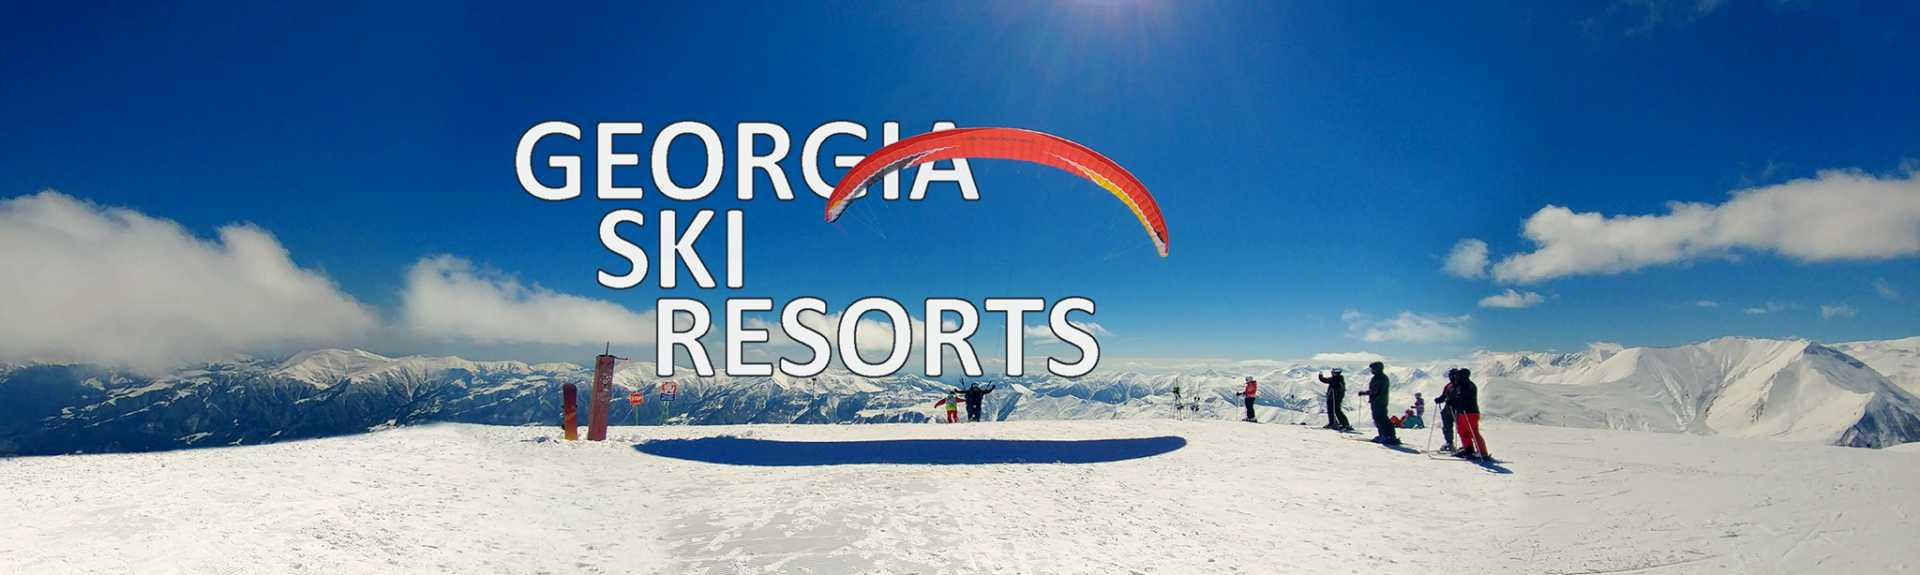 Georgia Ski Resorts